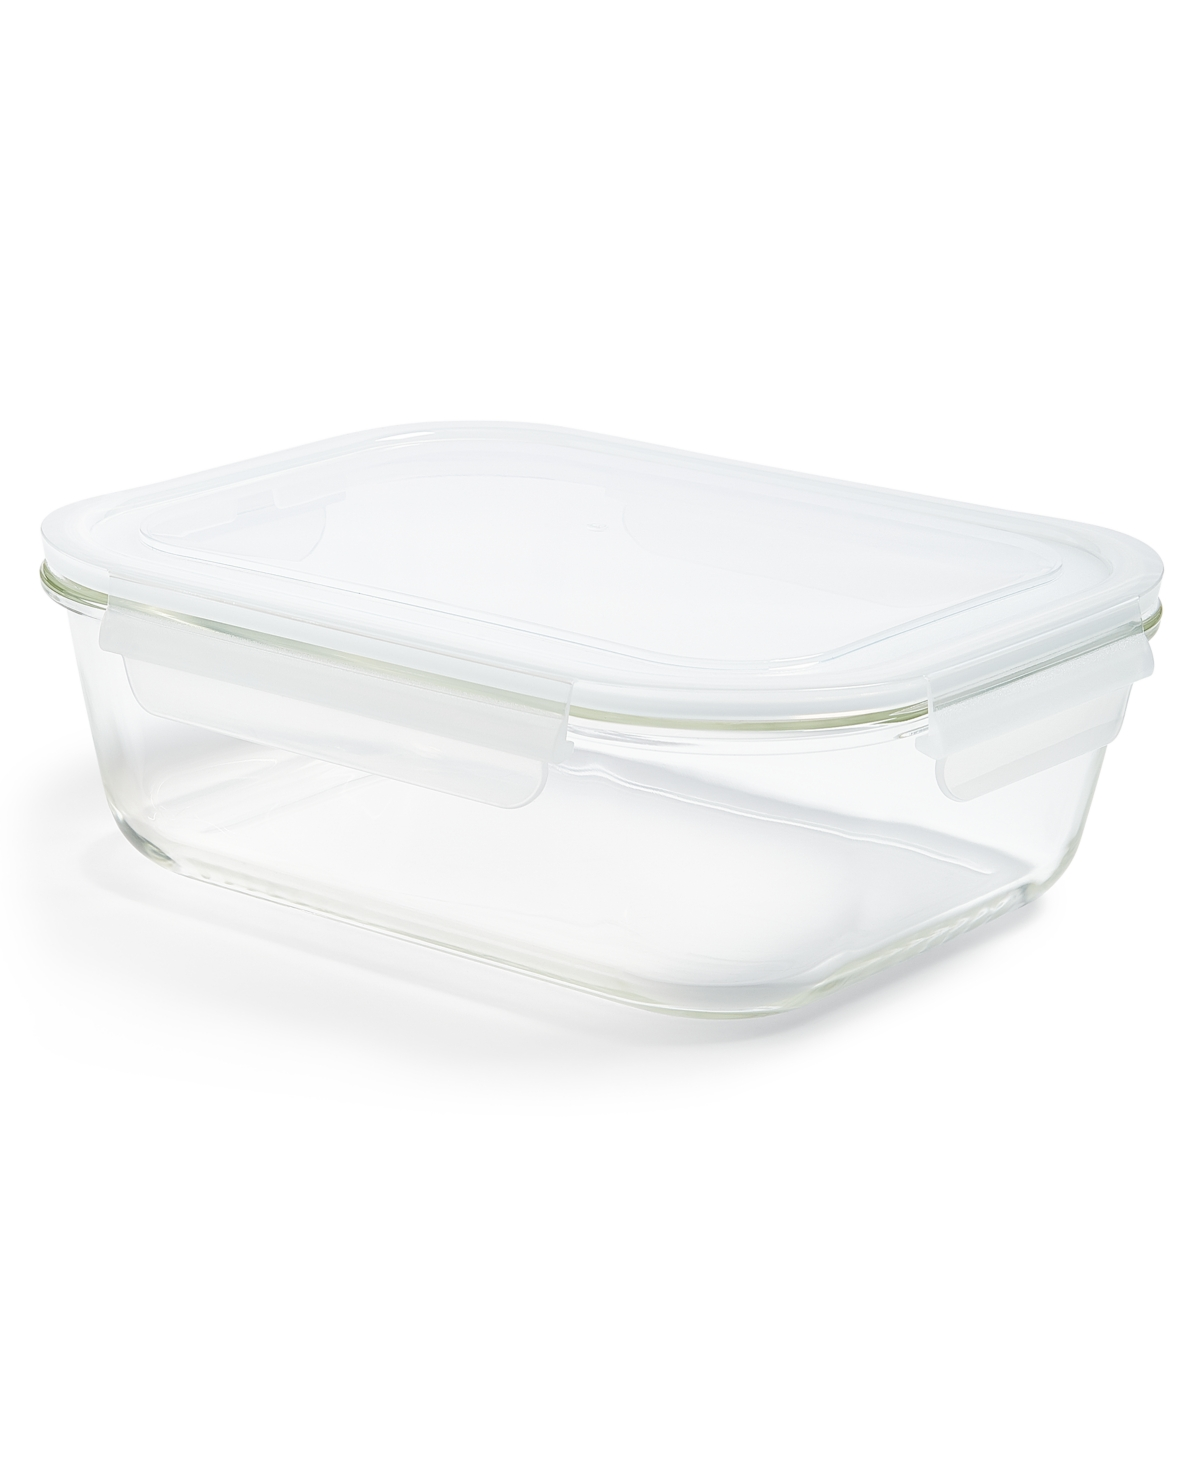 Martha Stewart Collection 9.6-Cup Rectangular Glass Food Storage Container, Created for Macy's